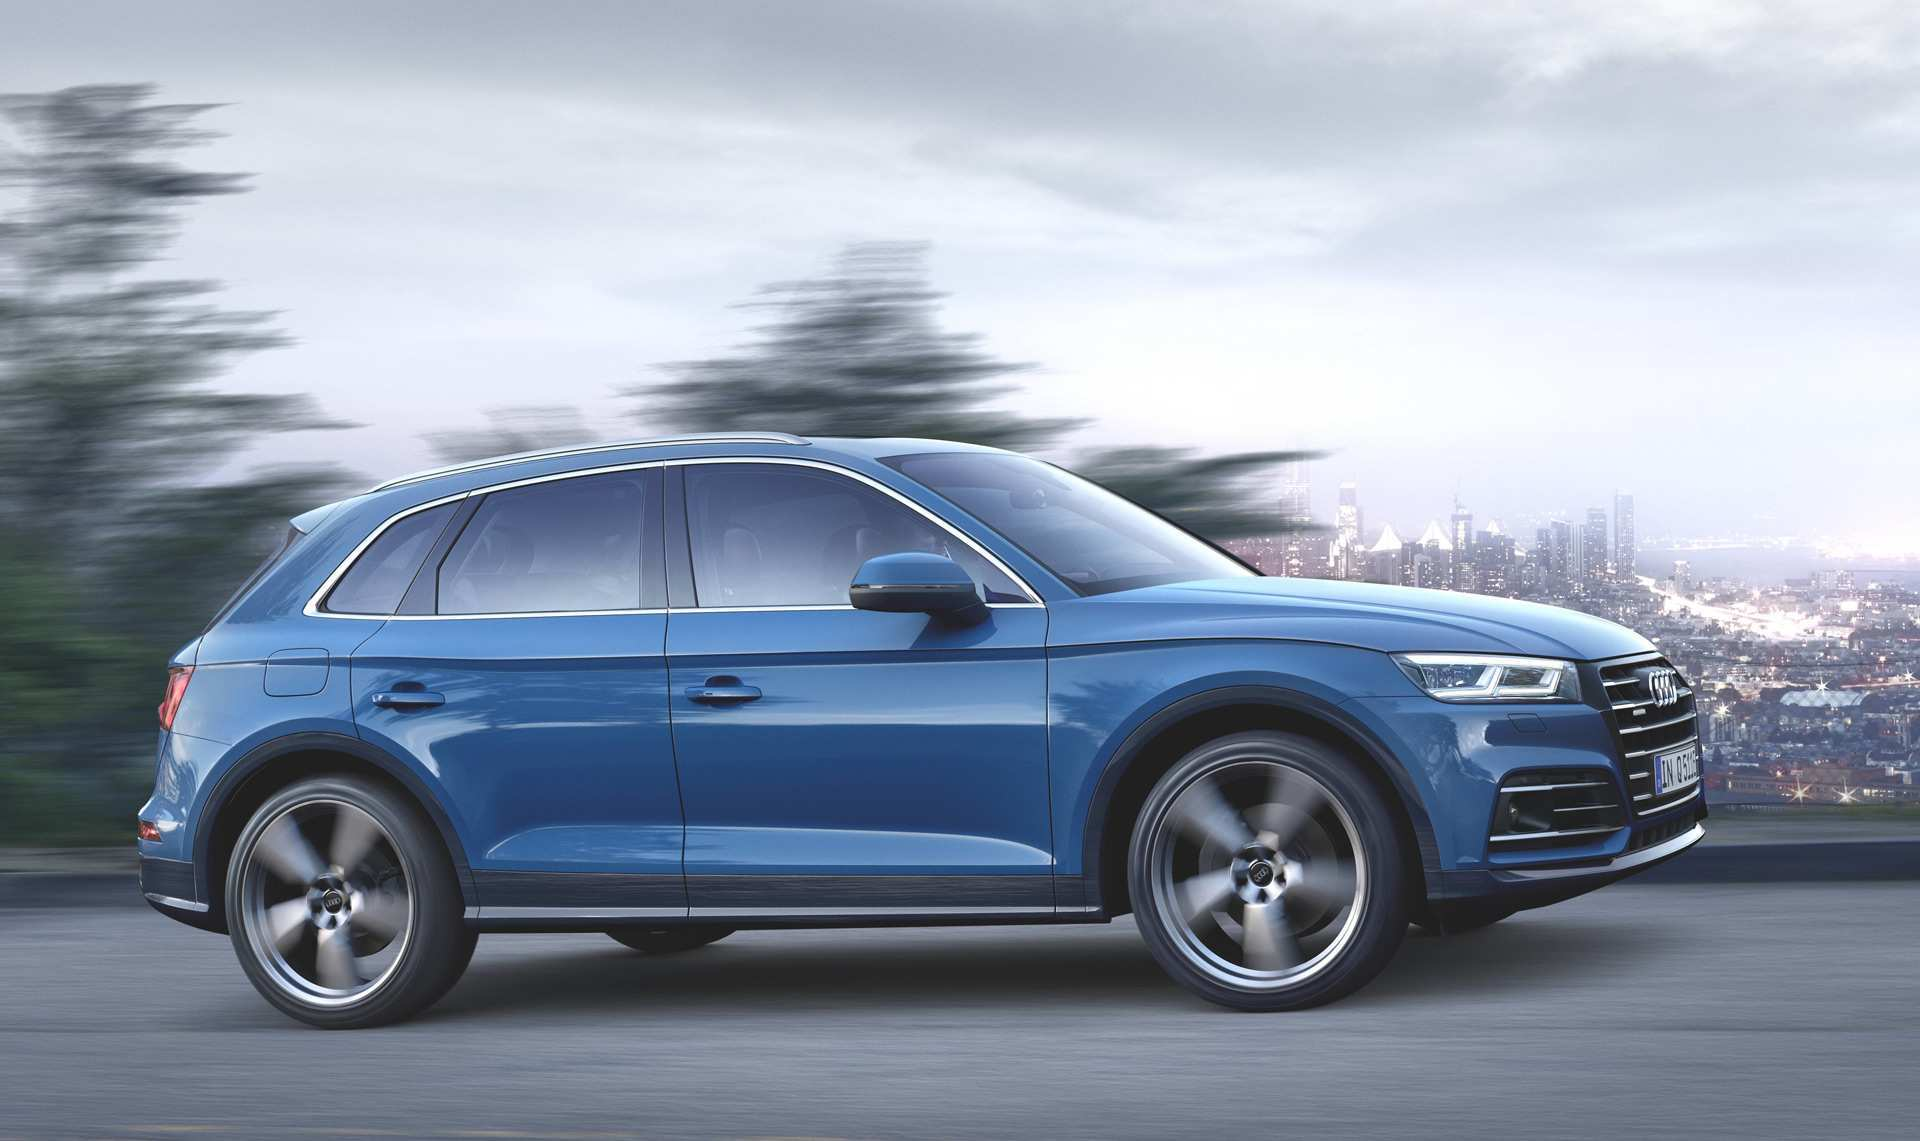 95 New When Do The 2020 Audi Q5 Come Out Prices